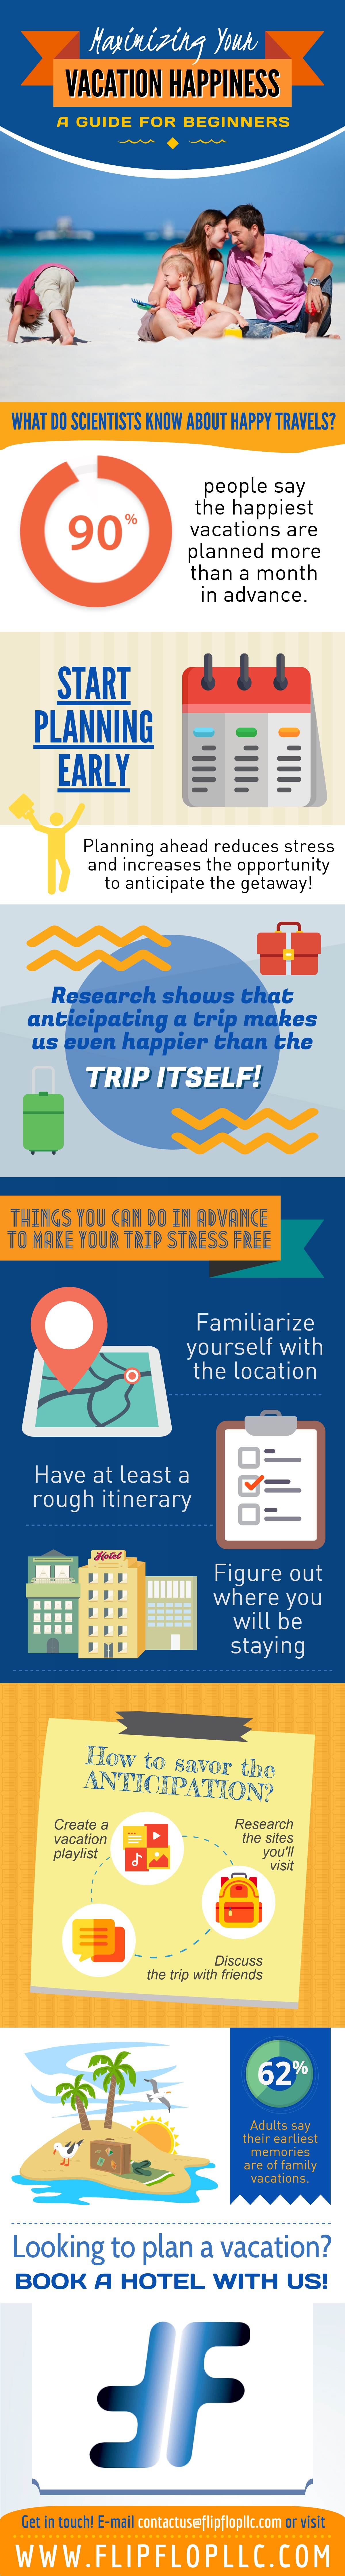 Image showing infographic to buy and sell hotel rooms